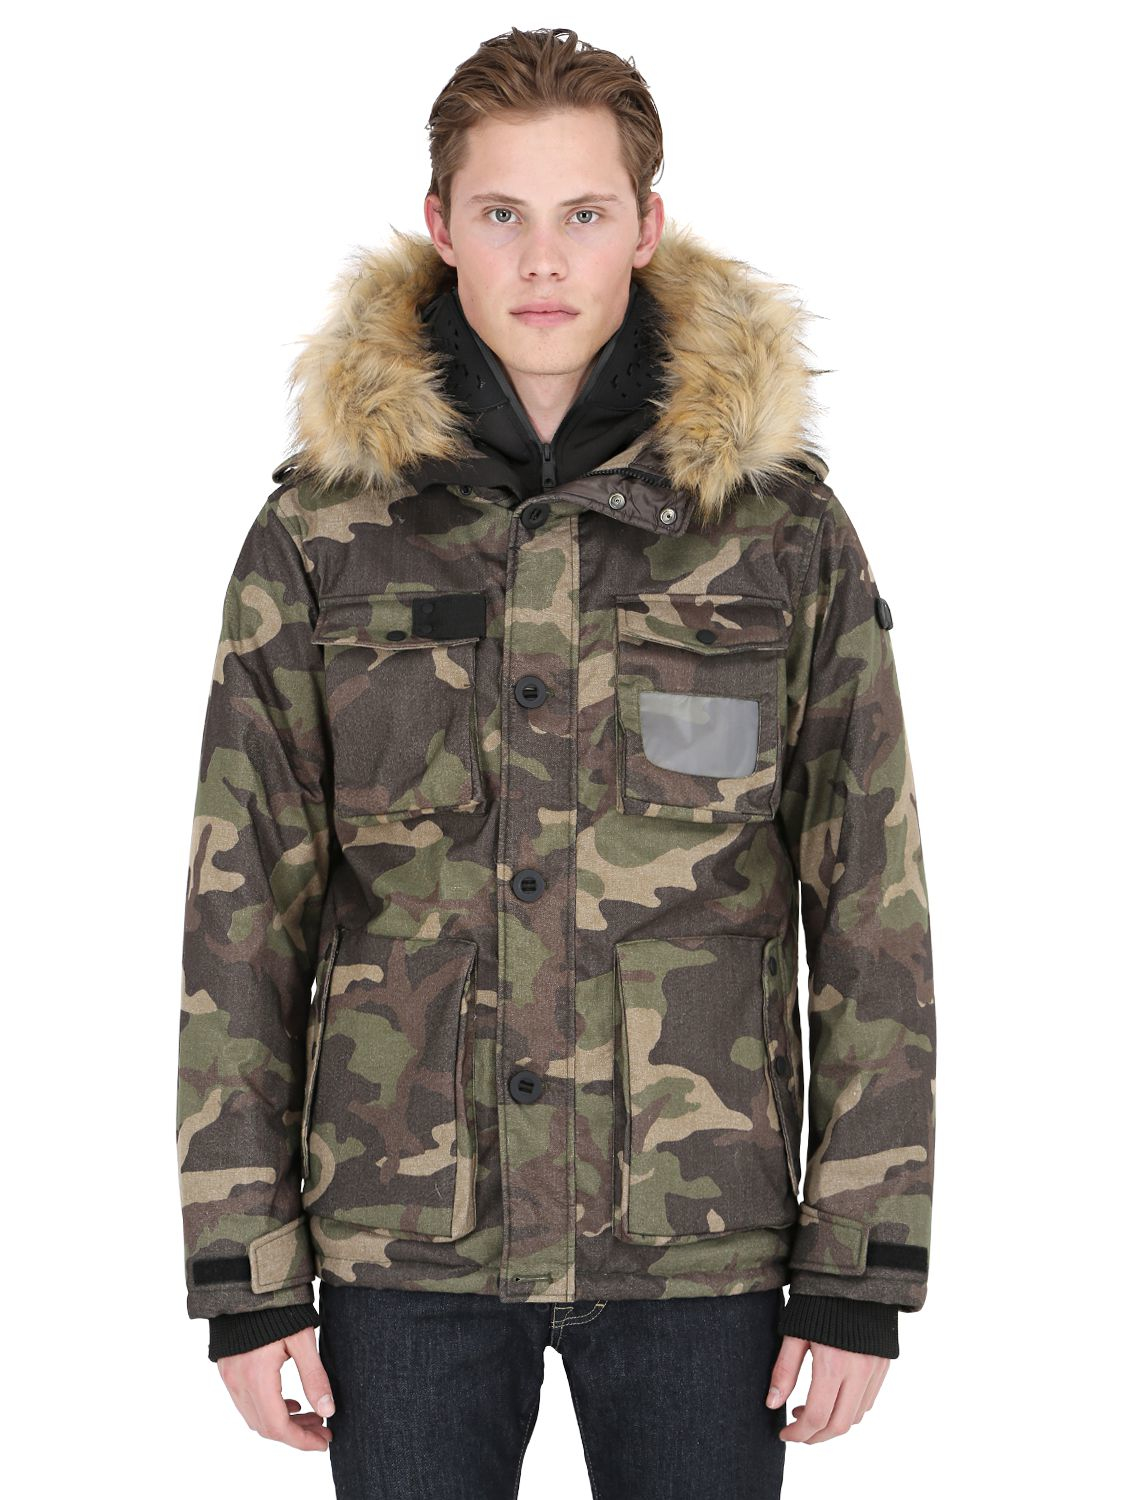 Mens camo jacket with fur hood